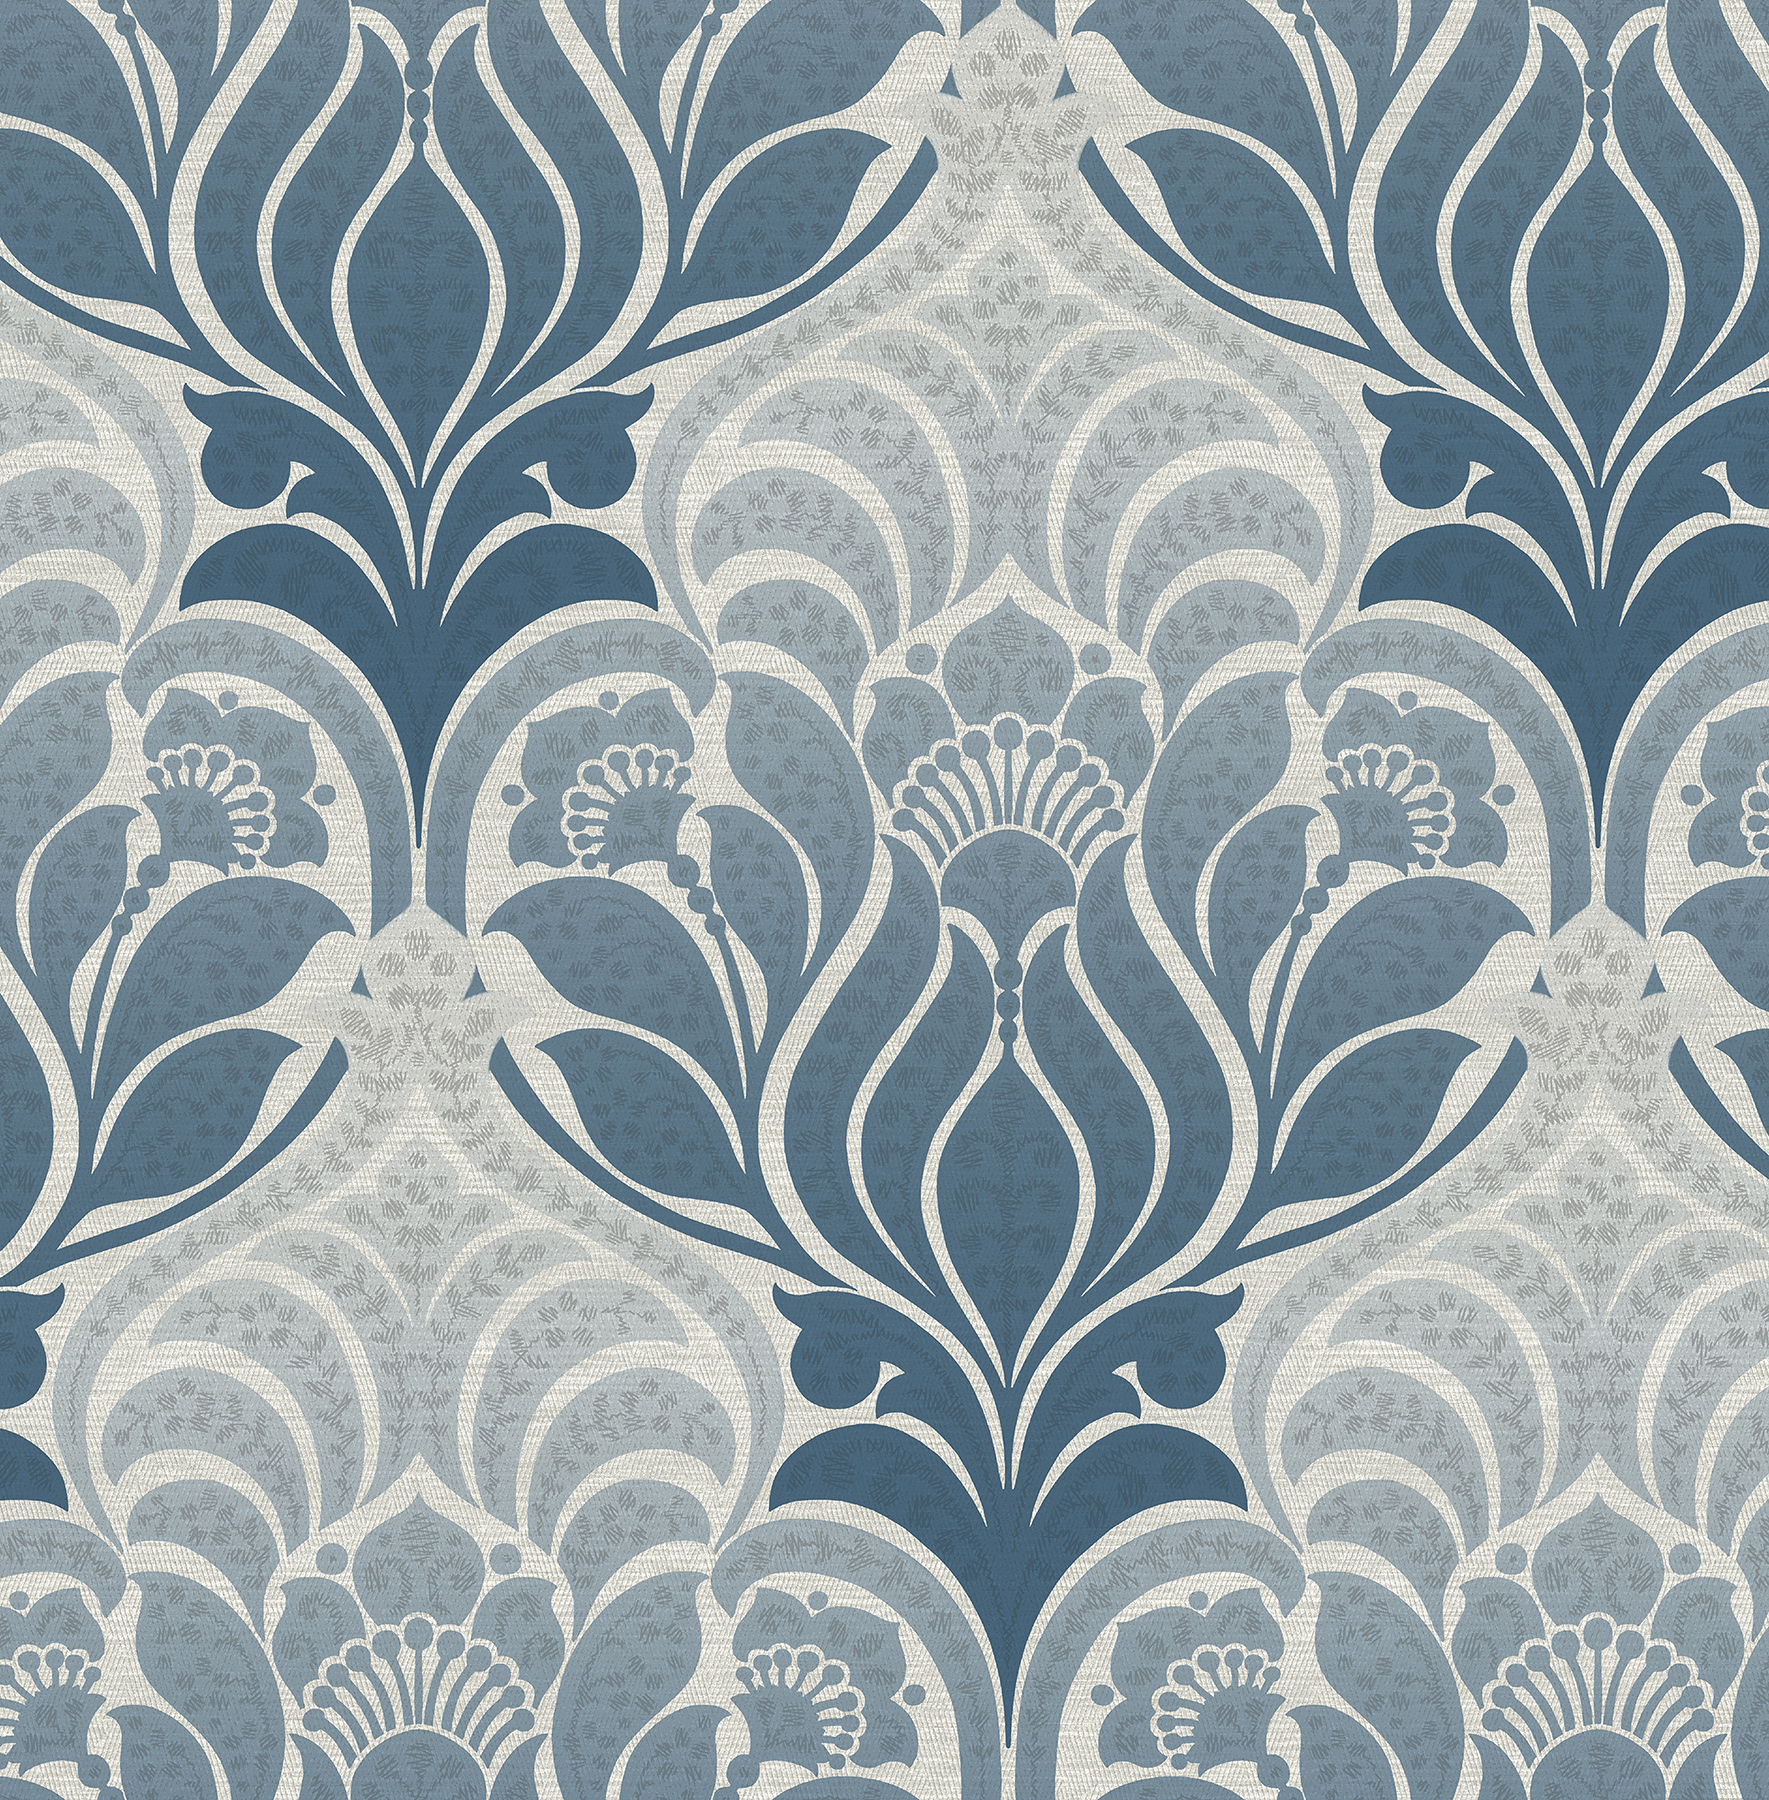 Kenneth James by Brewster 2671-22425 Twill Blue Damask Wallpaper